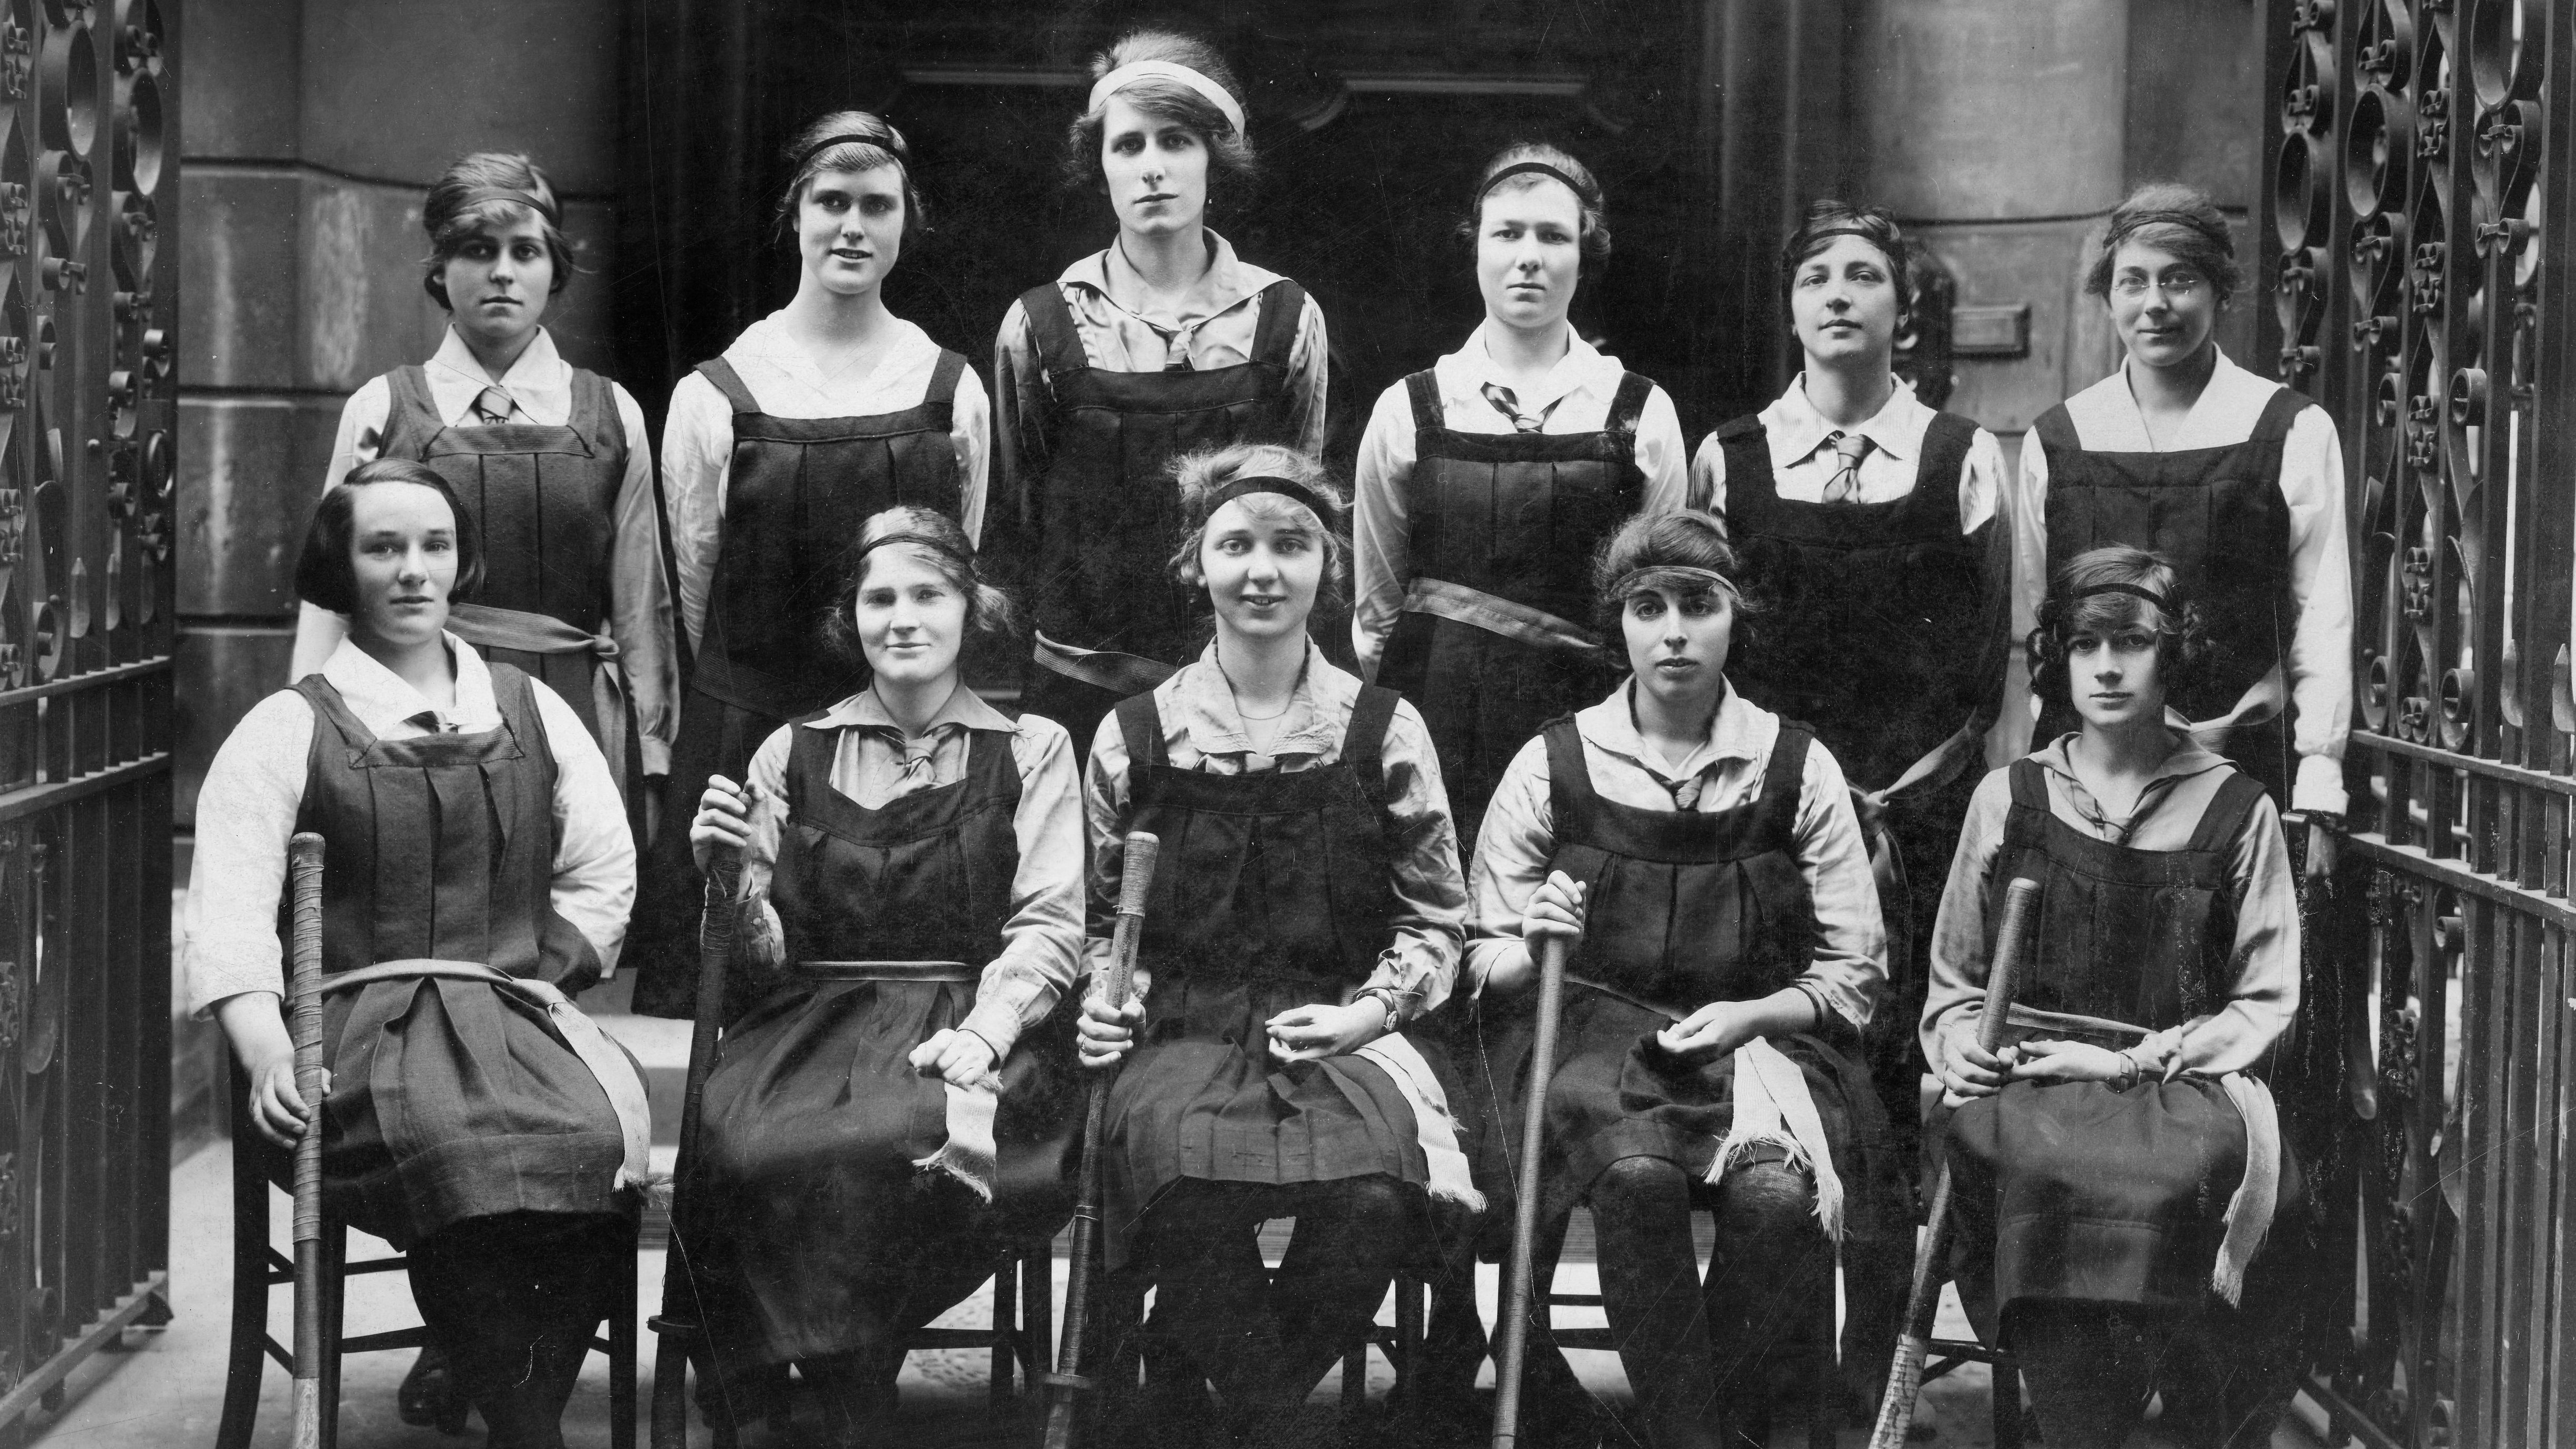 LSE Women's Hockey team 1920-21